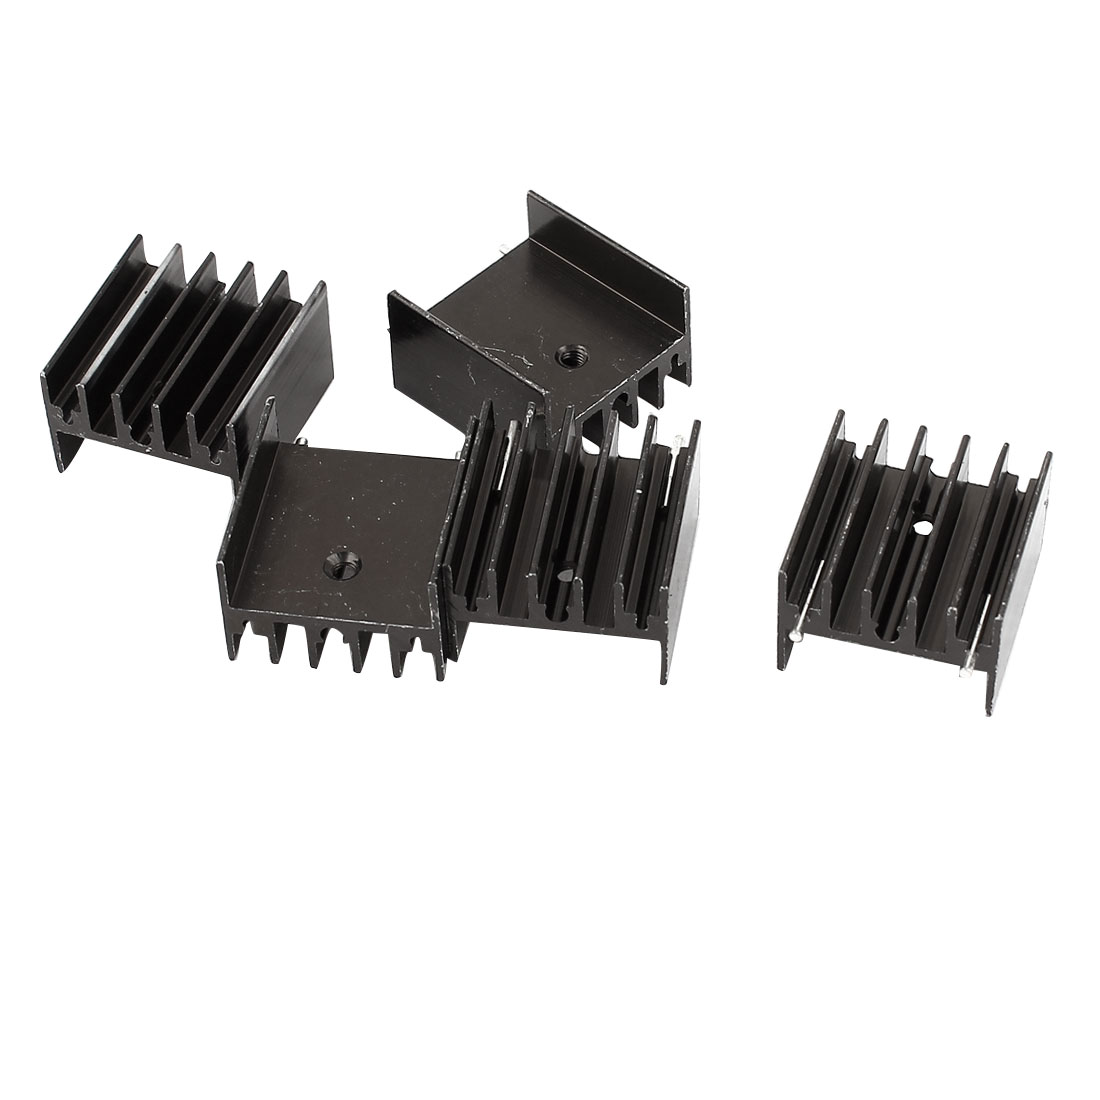 5 Pcs 25mmx23mmx16mm Black Aluminum Heatsinks Radiator + Needles for Mosfet IC